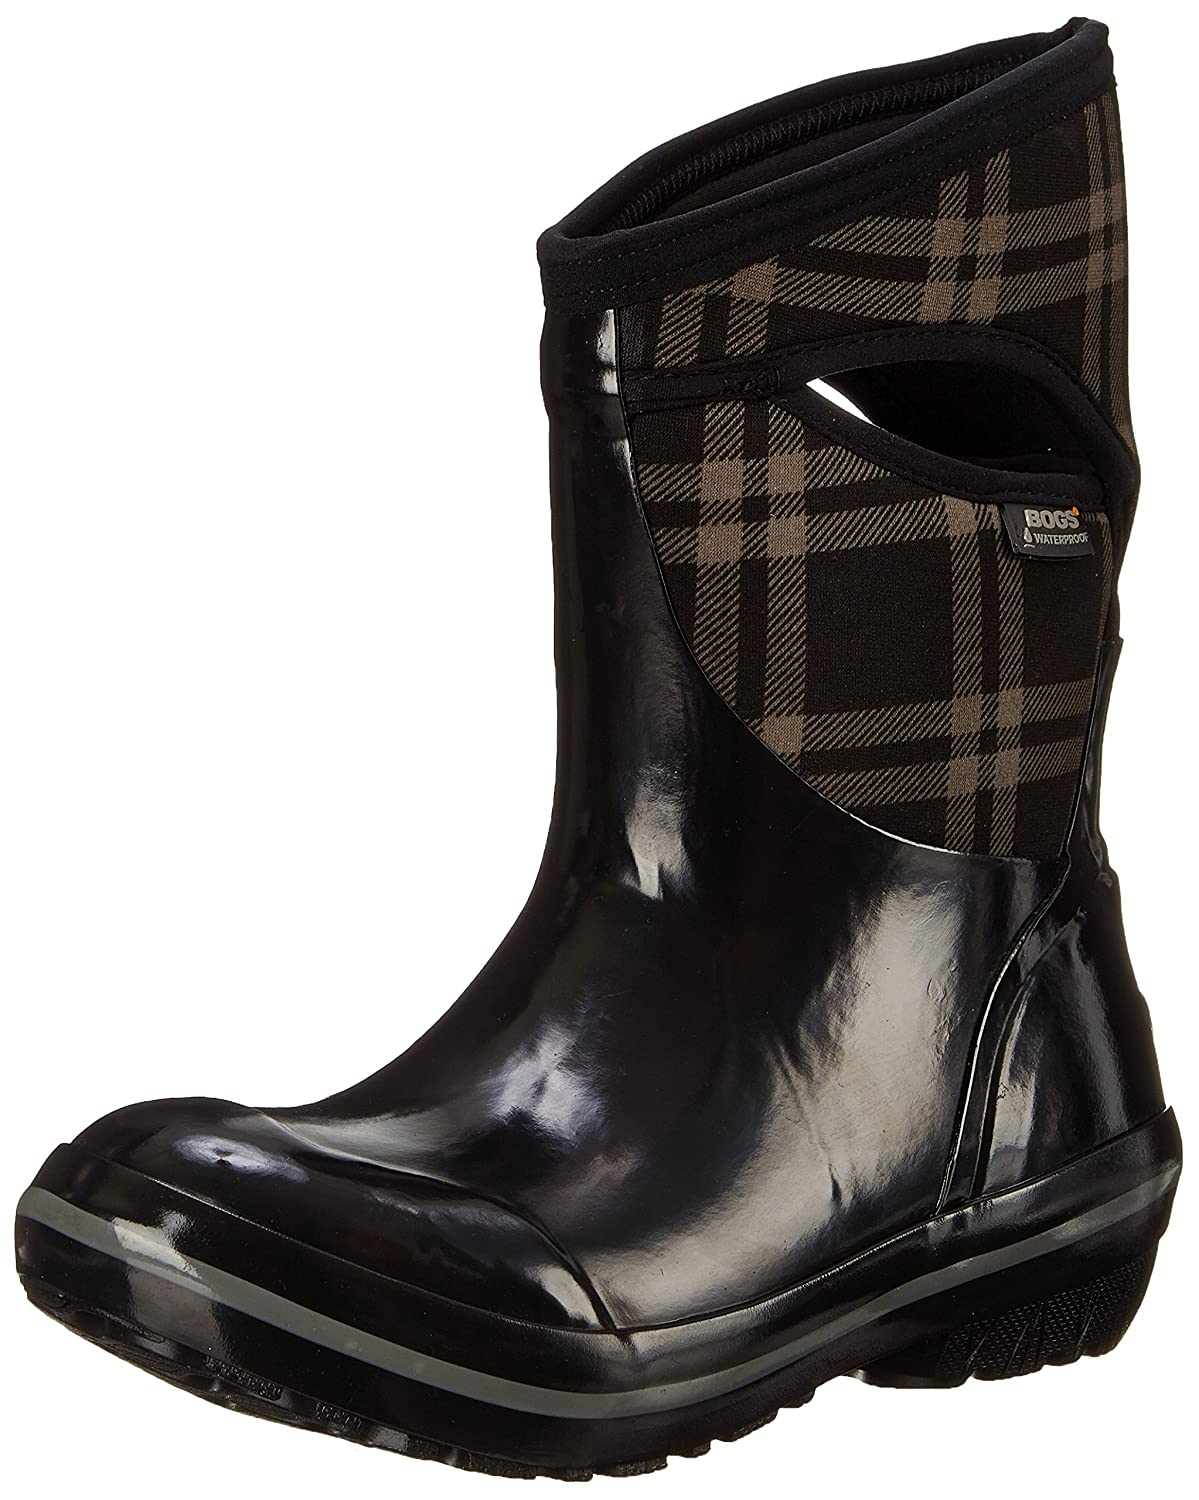 Bogs Women's Plimsoll Plaid Mid Winter Snow Boot B00QMMDAVG 7 B(M) US|Black